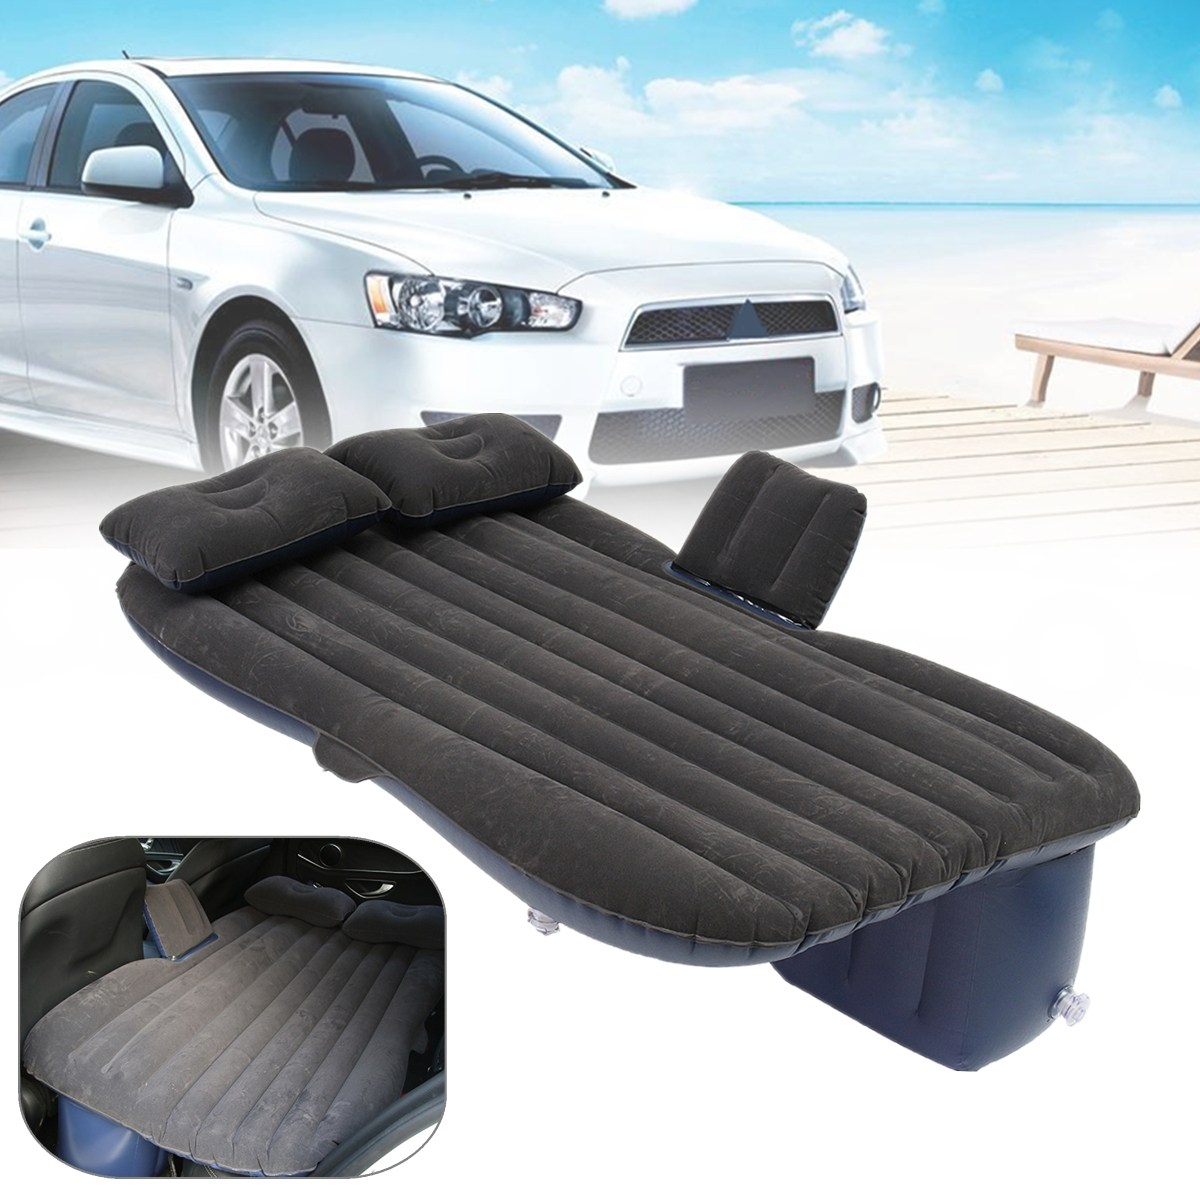 Outdoor camping Car Back Seat Cover Air Mattress Travel Mat Bed Inflatable Mattress Air Inflatable Car Bed with Inflatable Pump durable thicken pvc car travel inflatable bed automotive air mattress camping mat with air pump